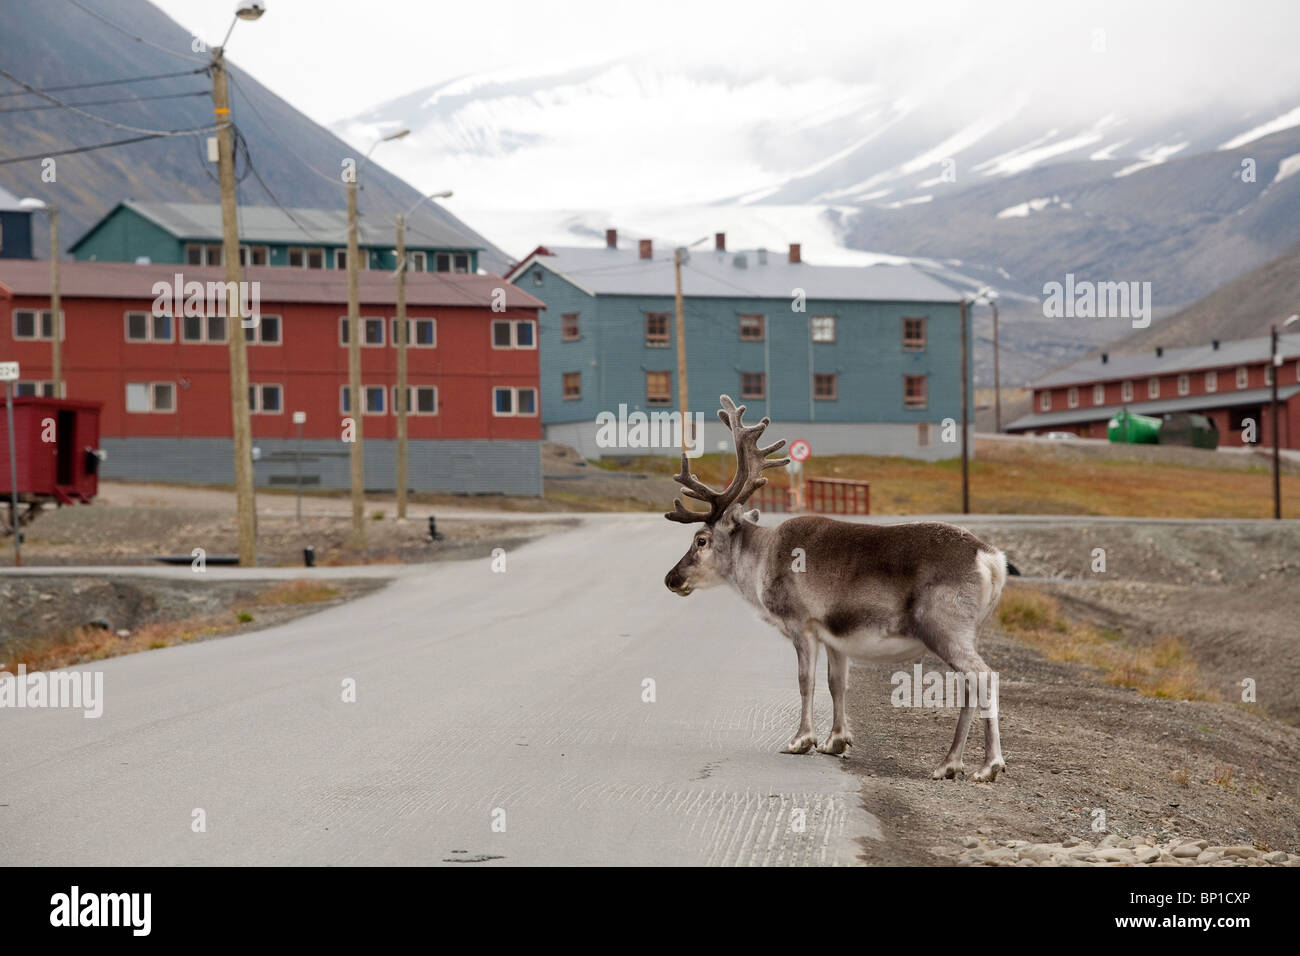 Image shows a reindeer  in Longyearbyen, the largest settlement of Svalbard archipelago, Norway.Photo:Jeff Gilbert - Stock Image